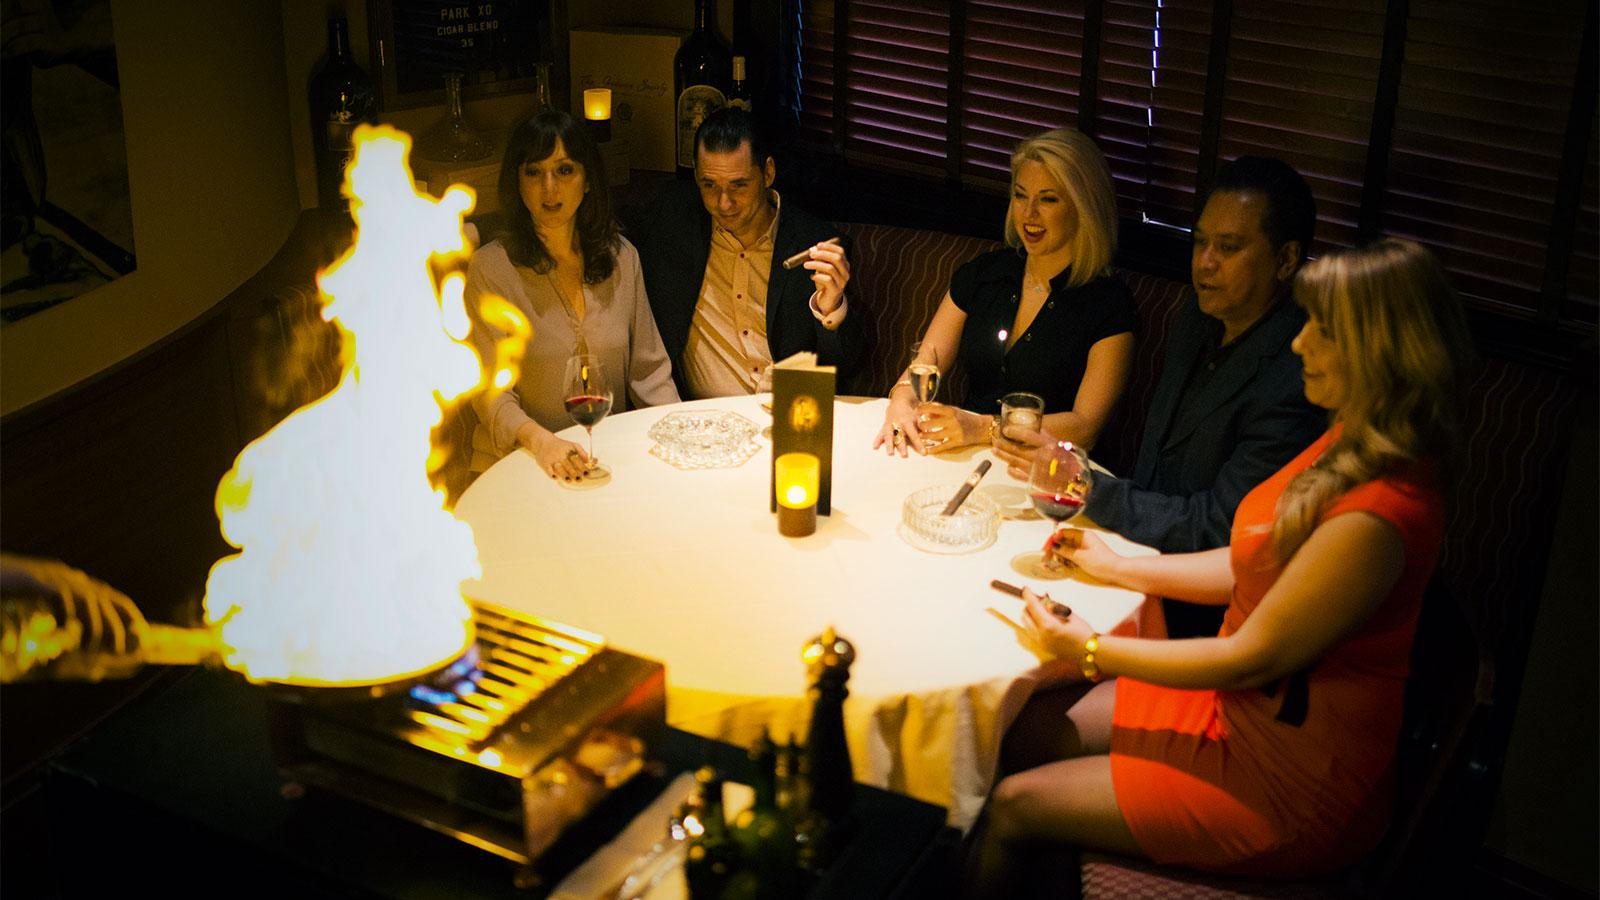 Along with an extensive list of cigar and drink offerings, guests can also choose from a bar bites menu available only in the cigar room.